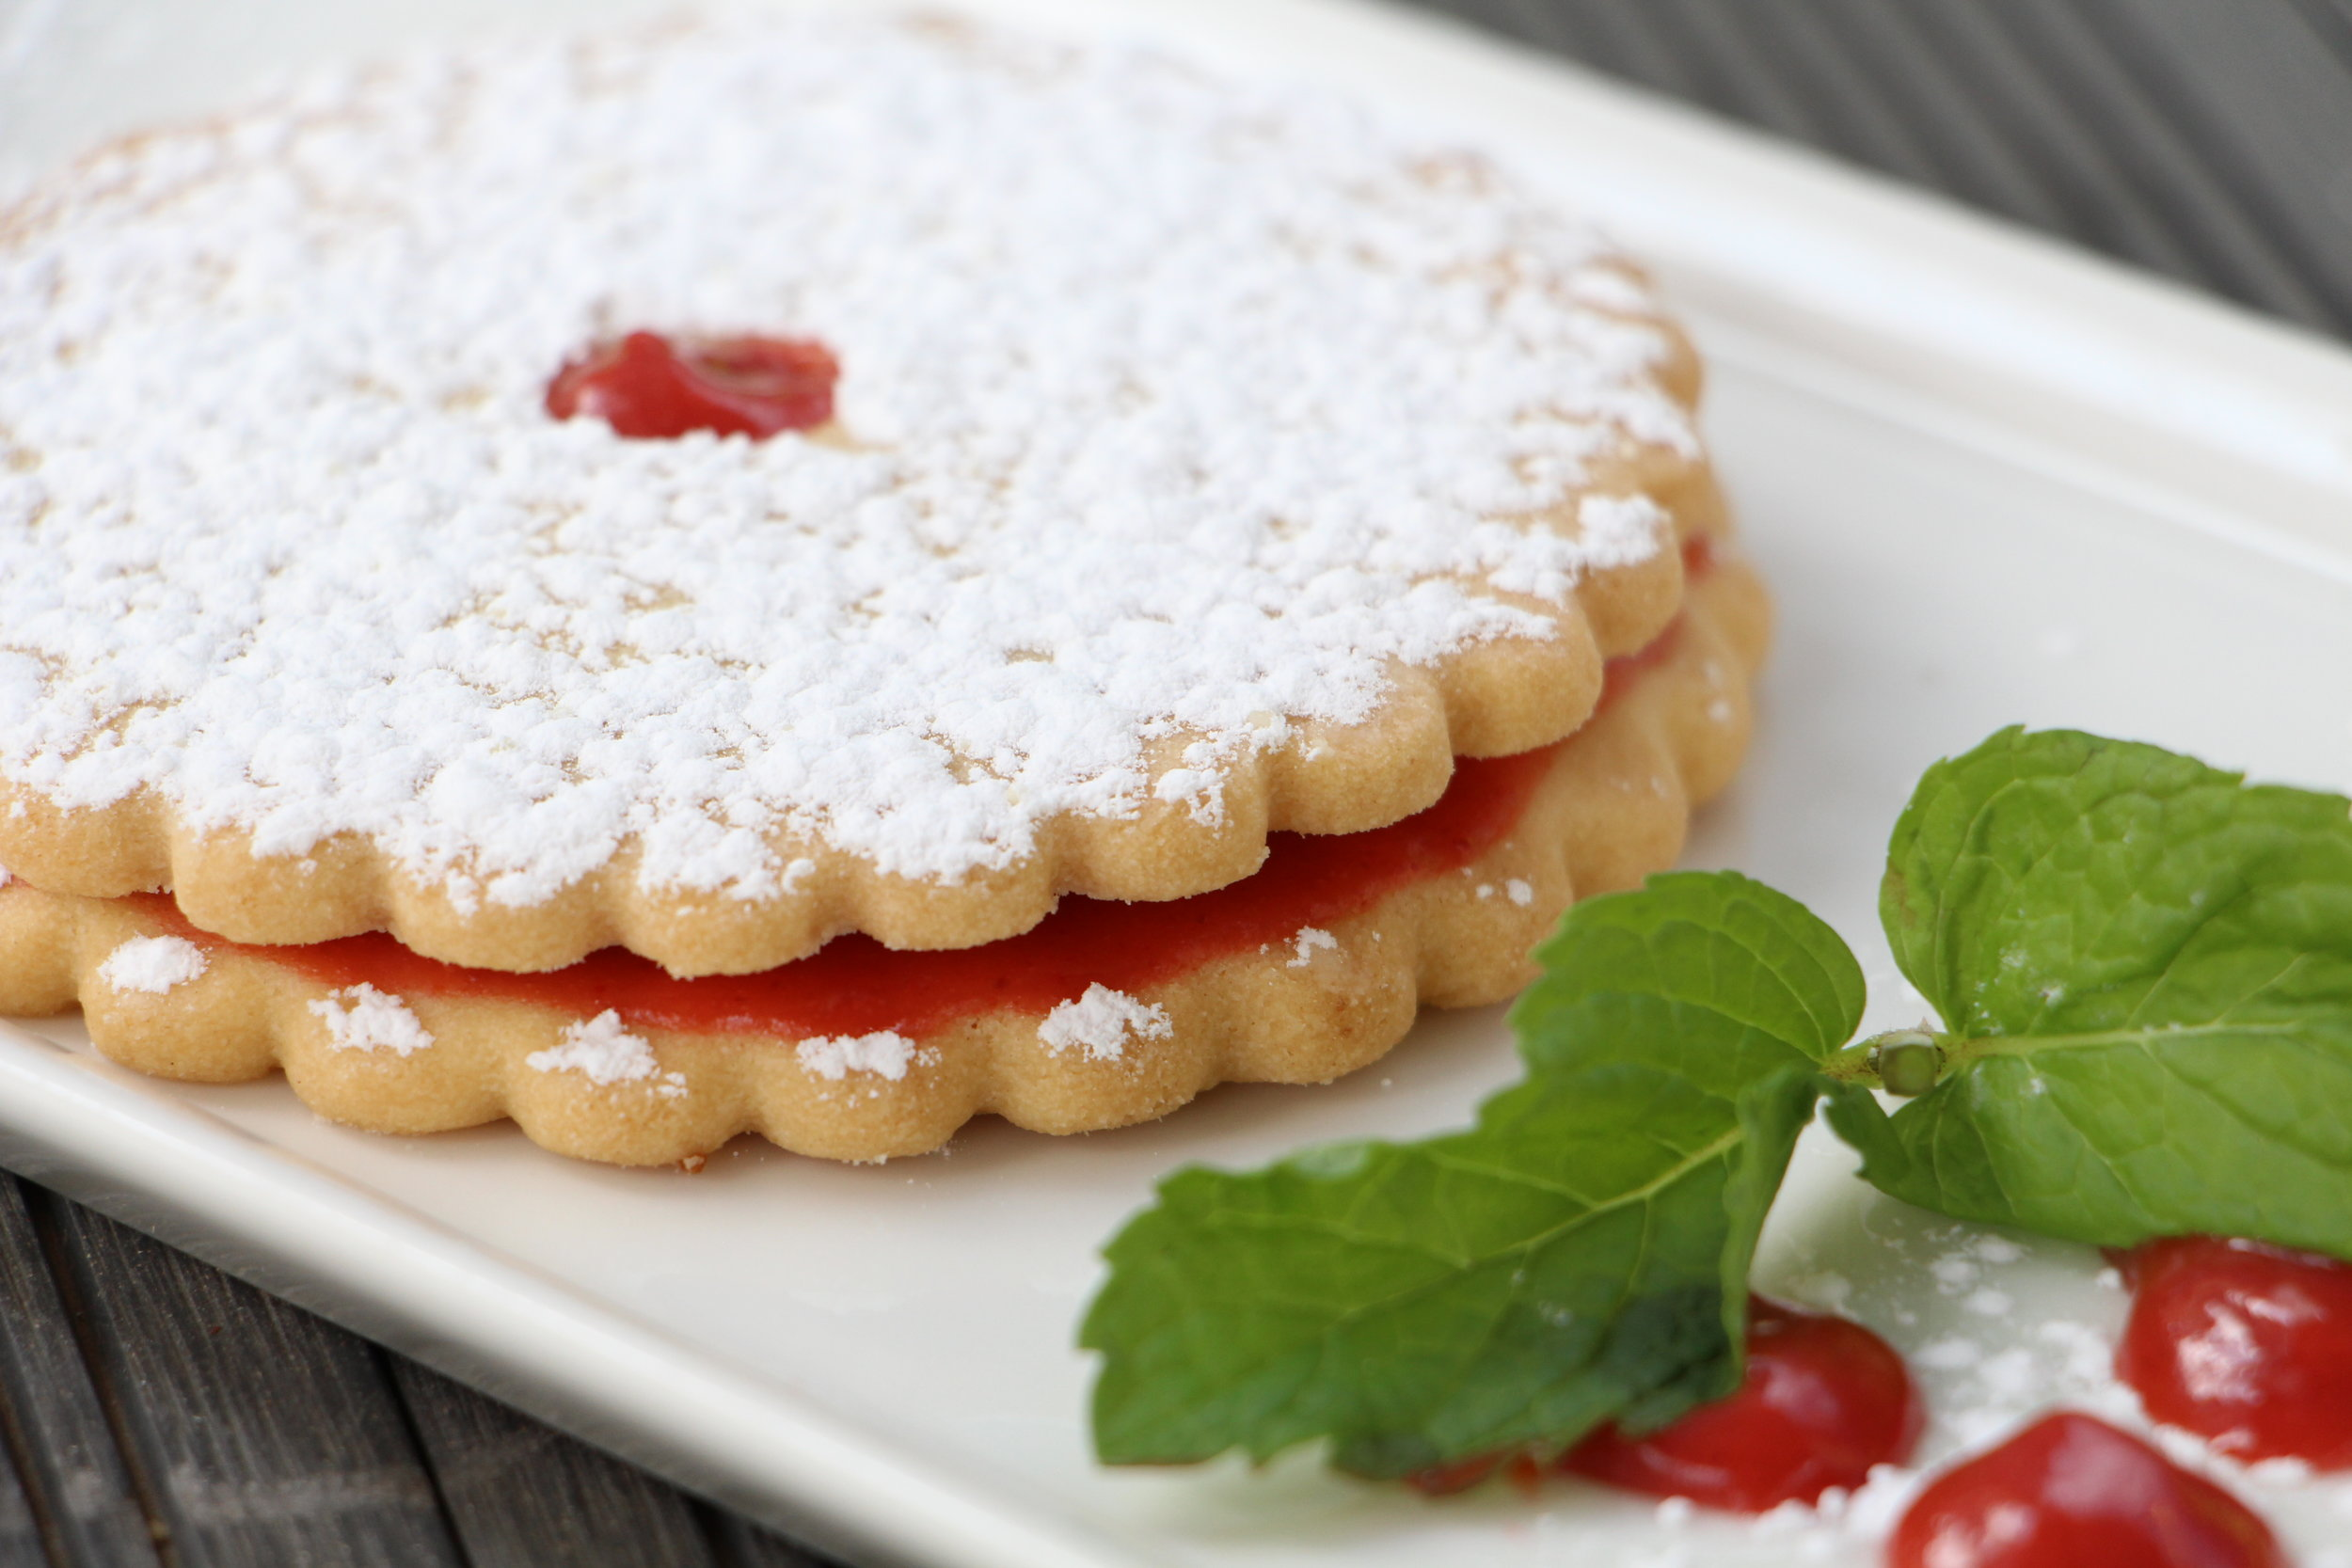 Soft, buttery cookies do the trick when you want something indulgent but not too heavy and the jam adds the just right amount of tarty sweetness to the buttery goodness.